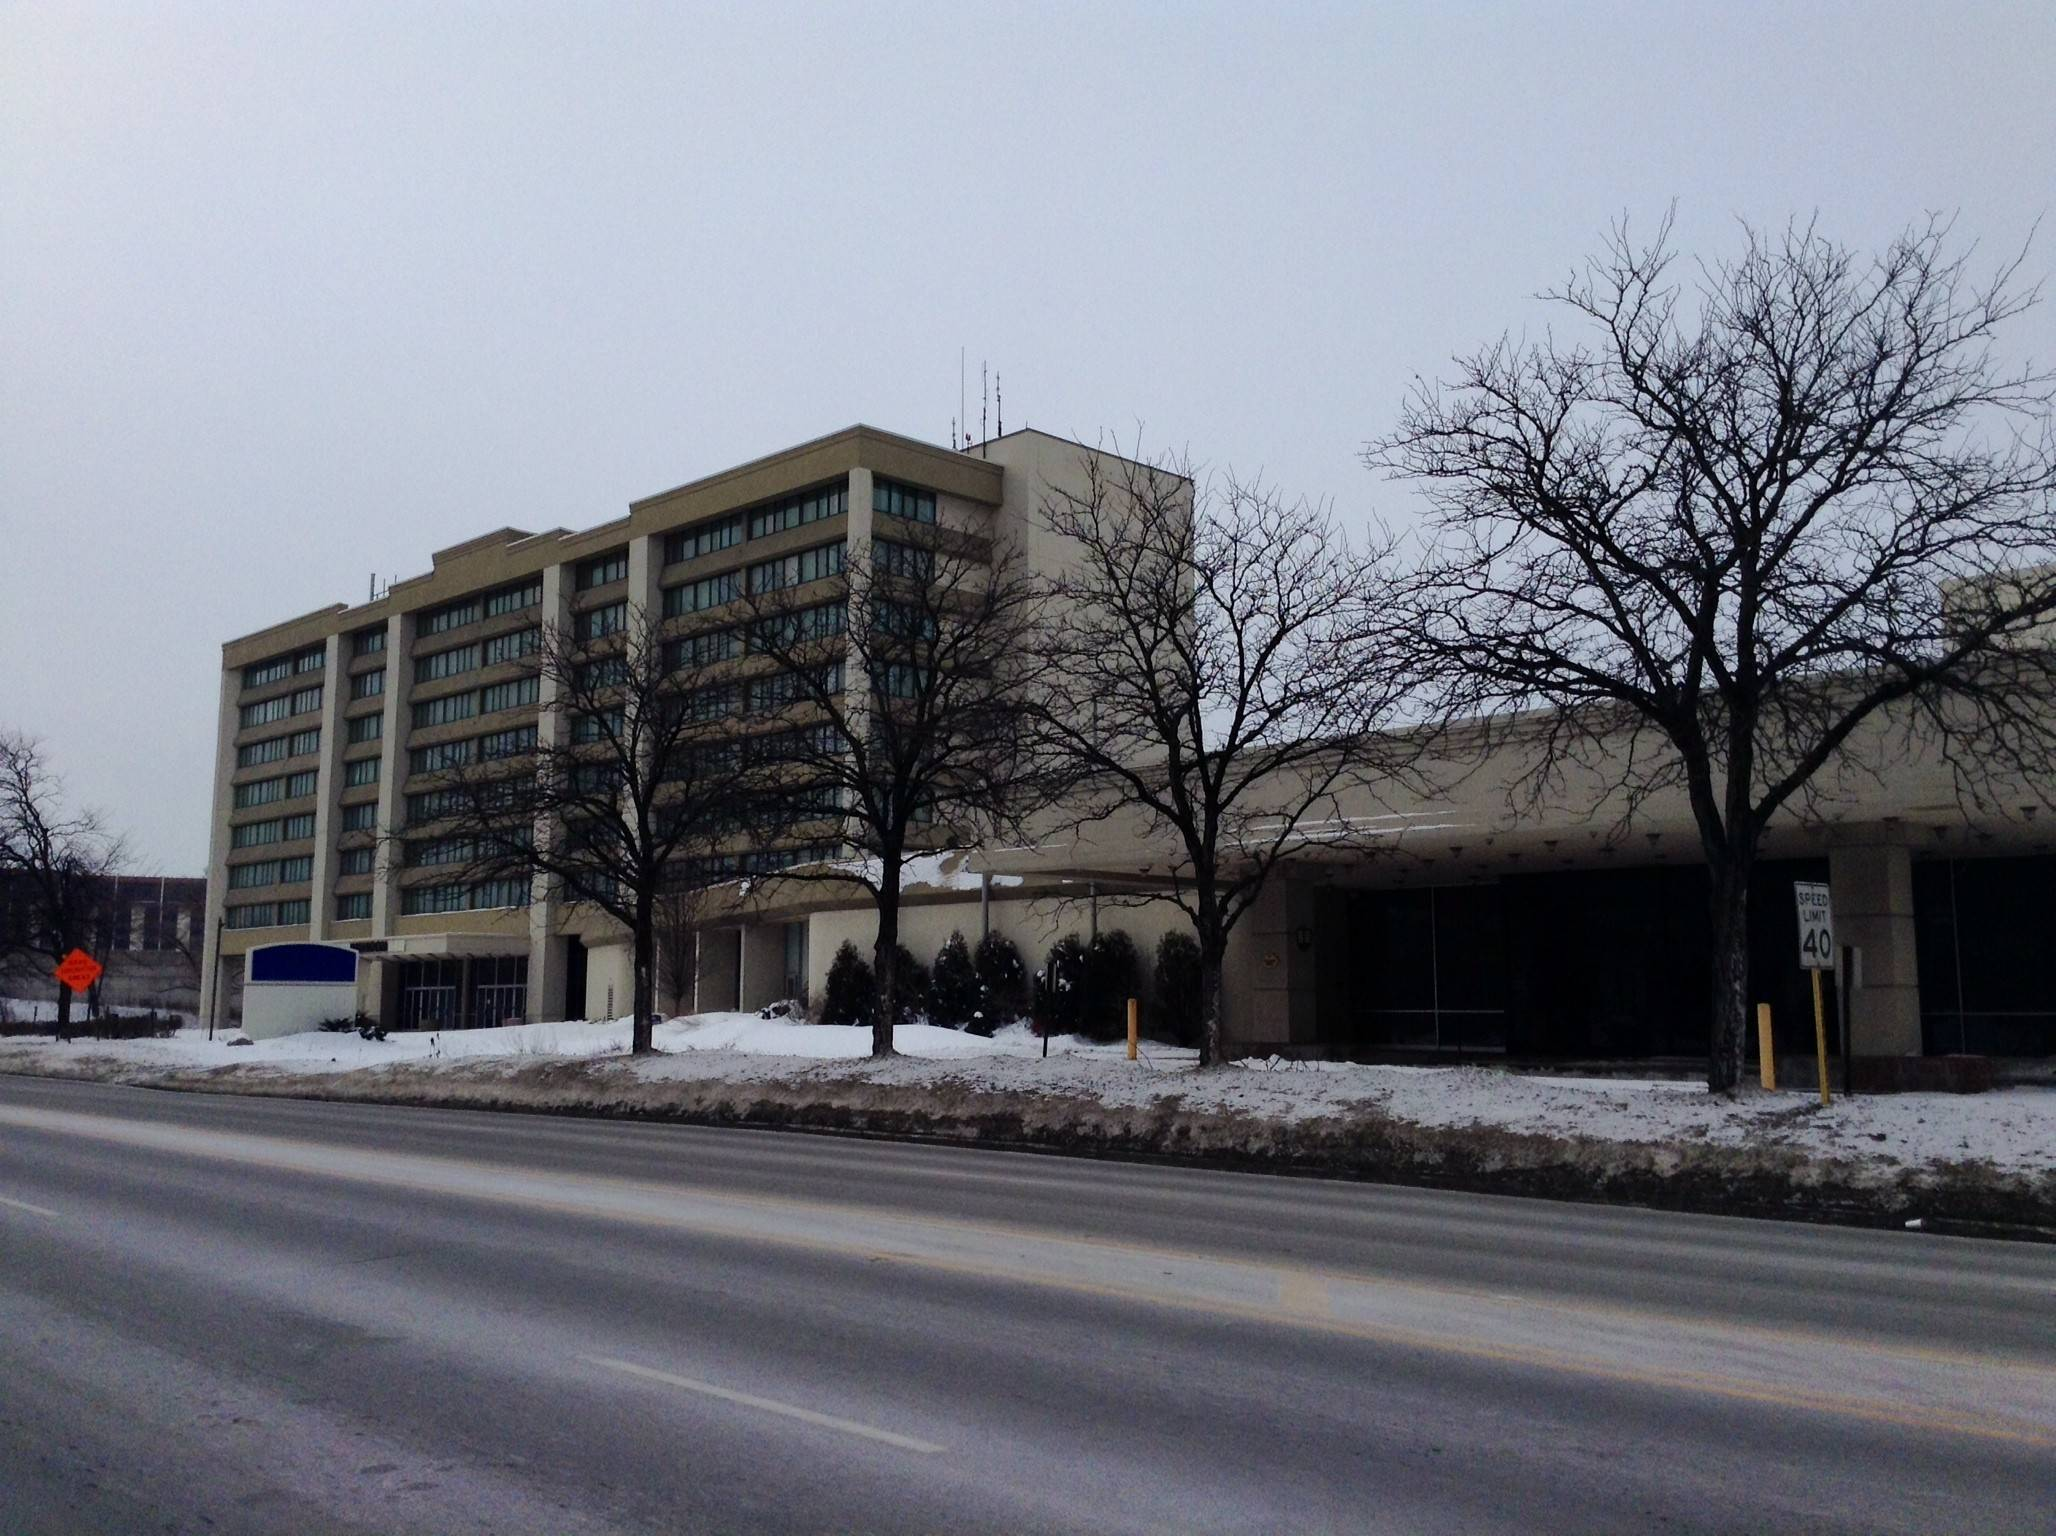 The former Wyndham O'Hare hotel at 6810 N. Mannheim Road in Rosemont is being redeveloped into two separate hotels: a La Quinta and a Hyatt Place.